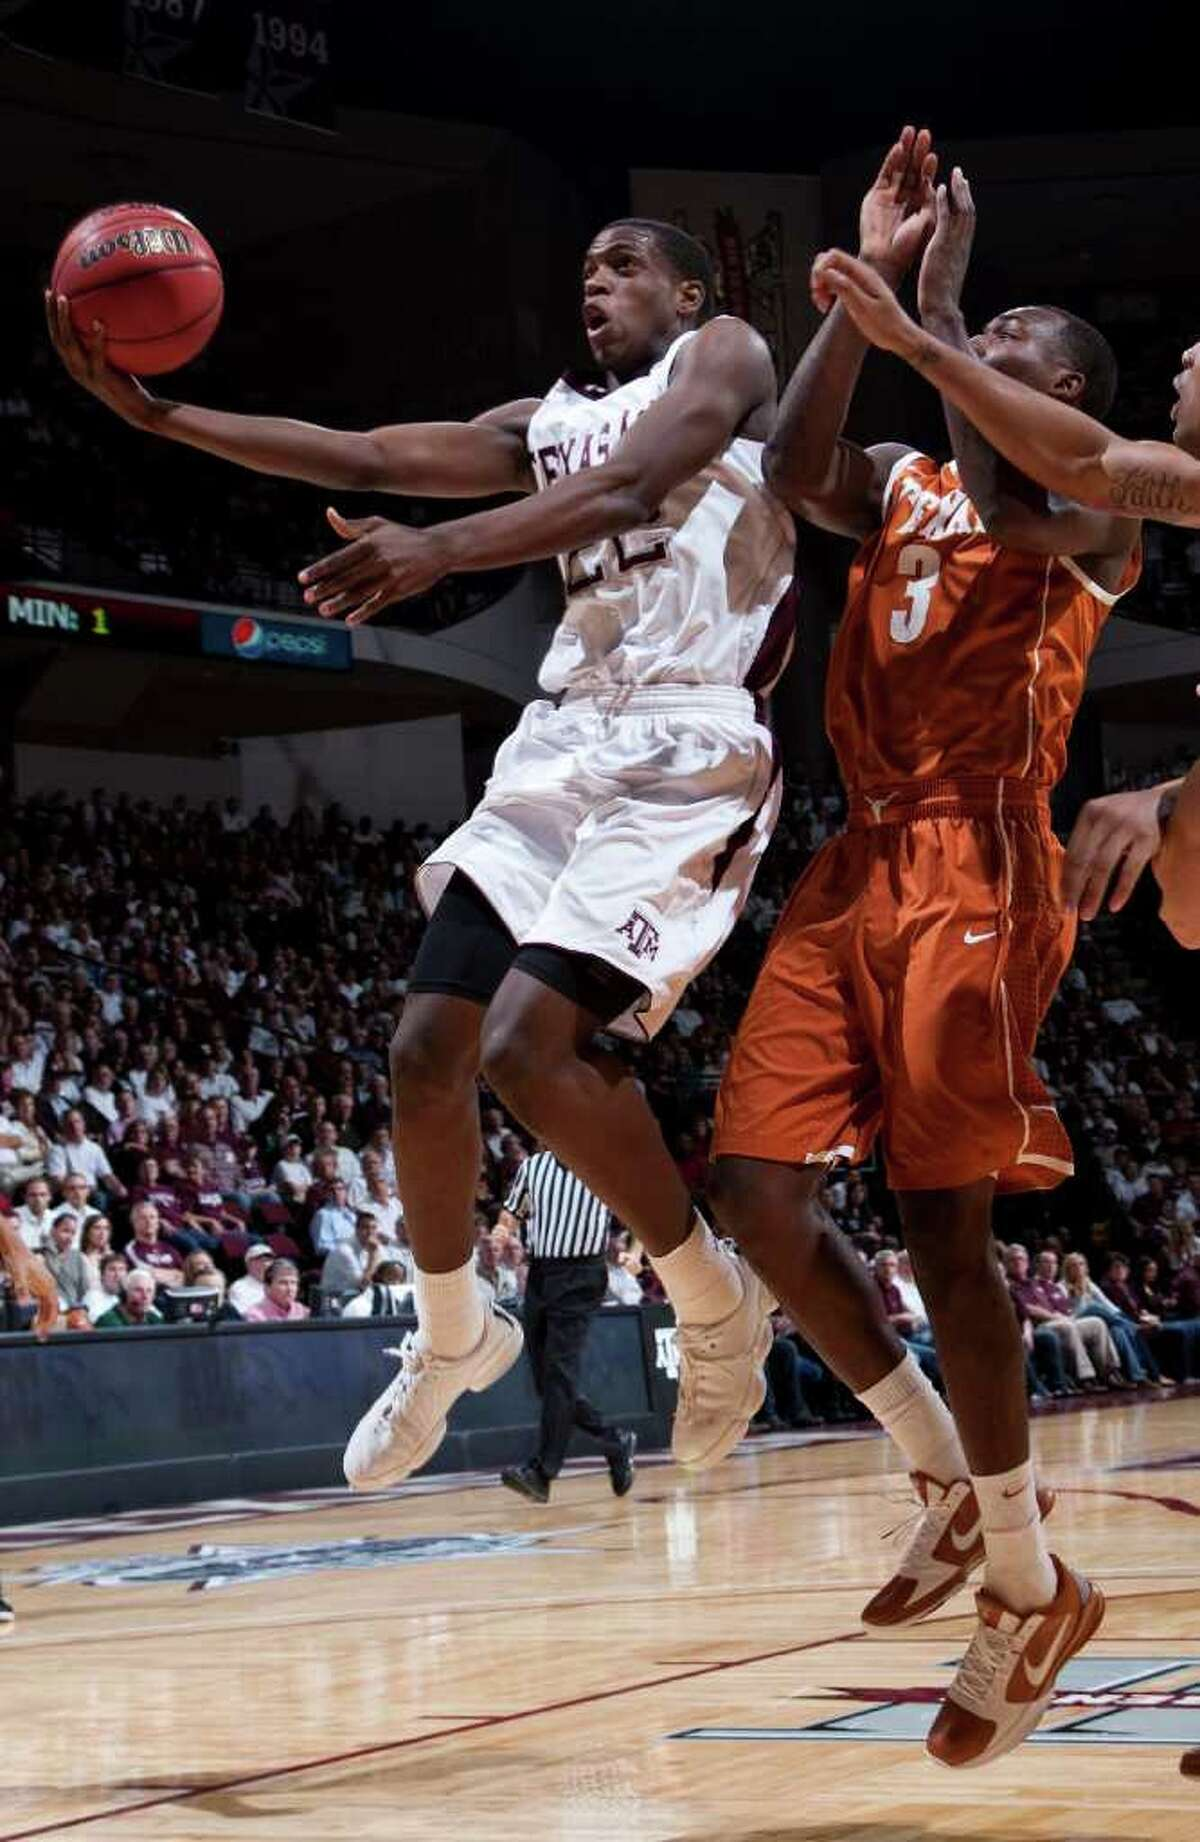 Texas A&M's Khris Middleton shoots against Texas' Jordan Hamilton during the first half on Monday, Jan. 31, 2011, in College Station.